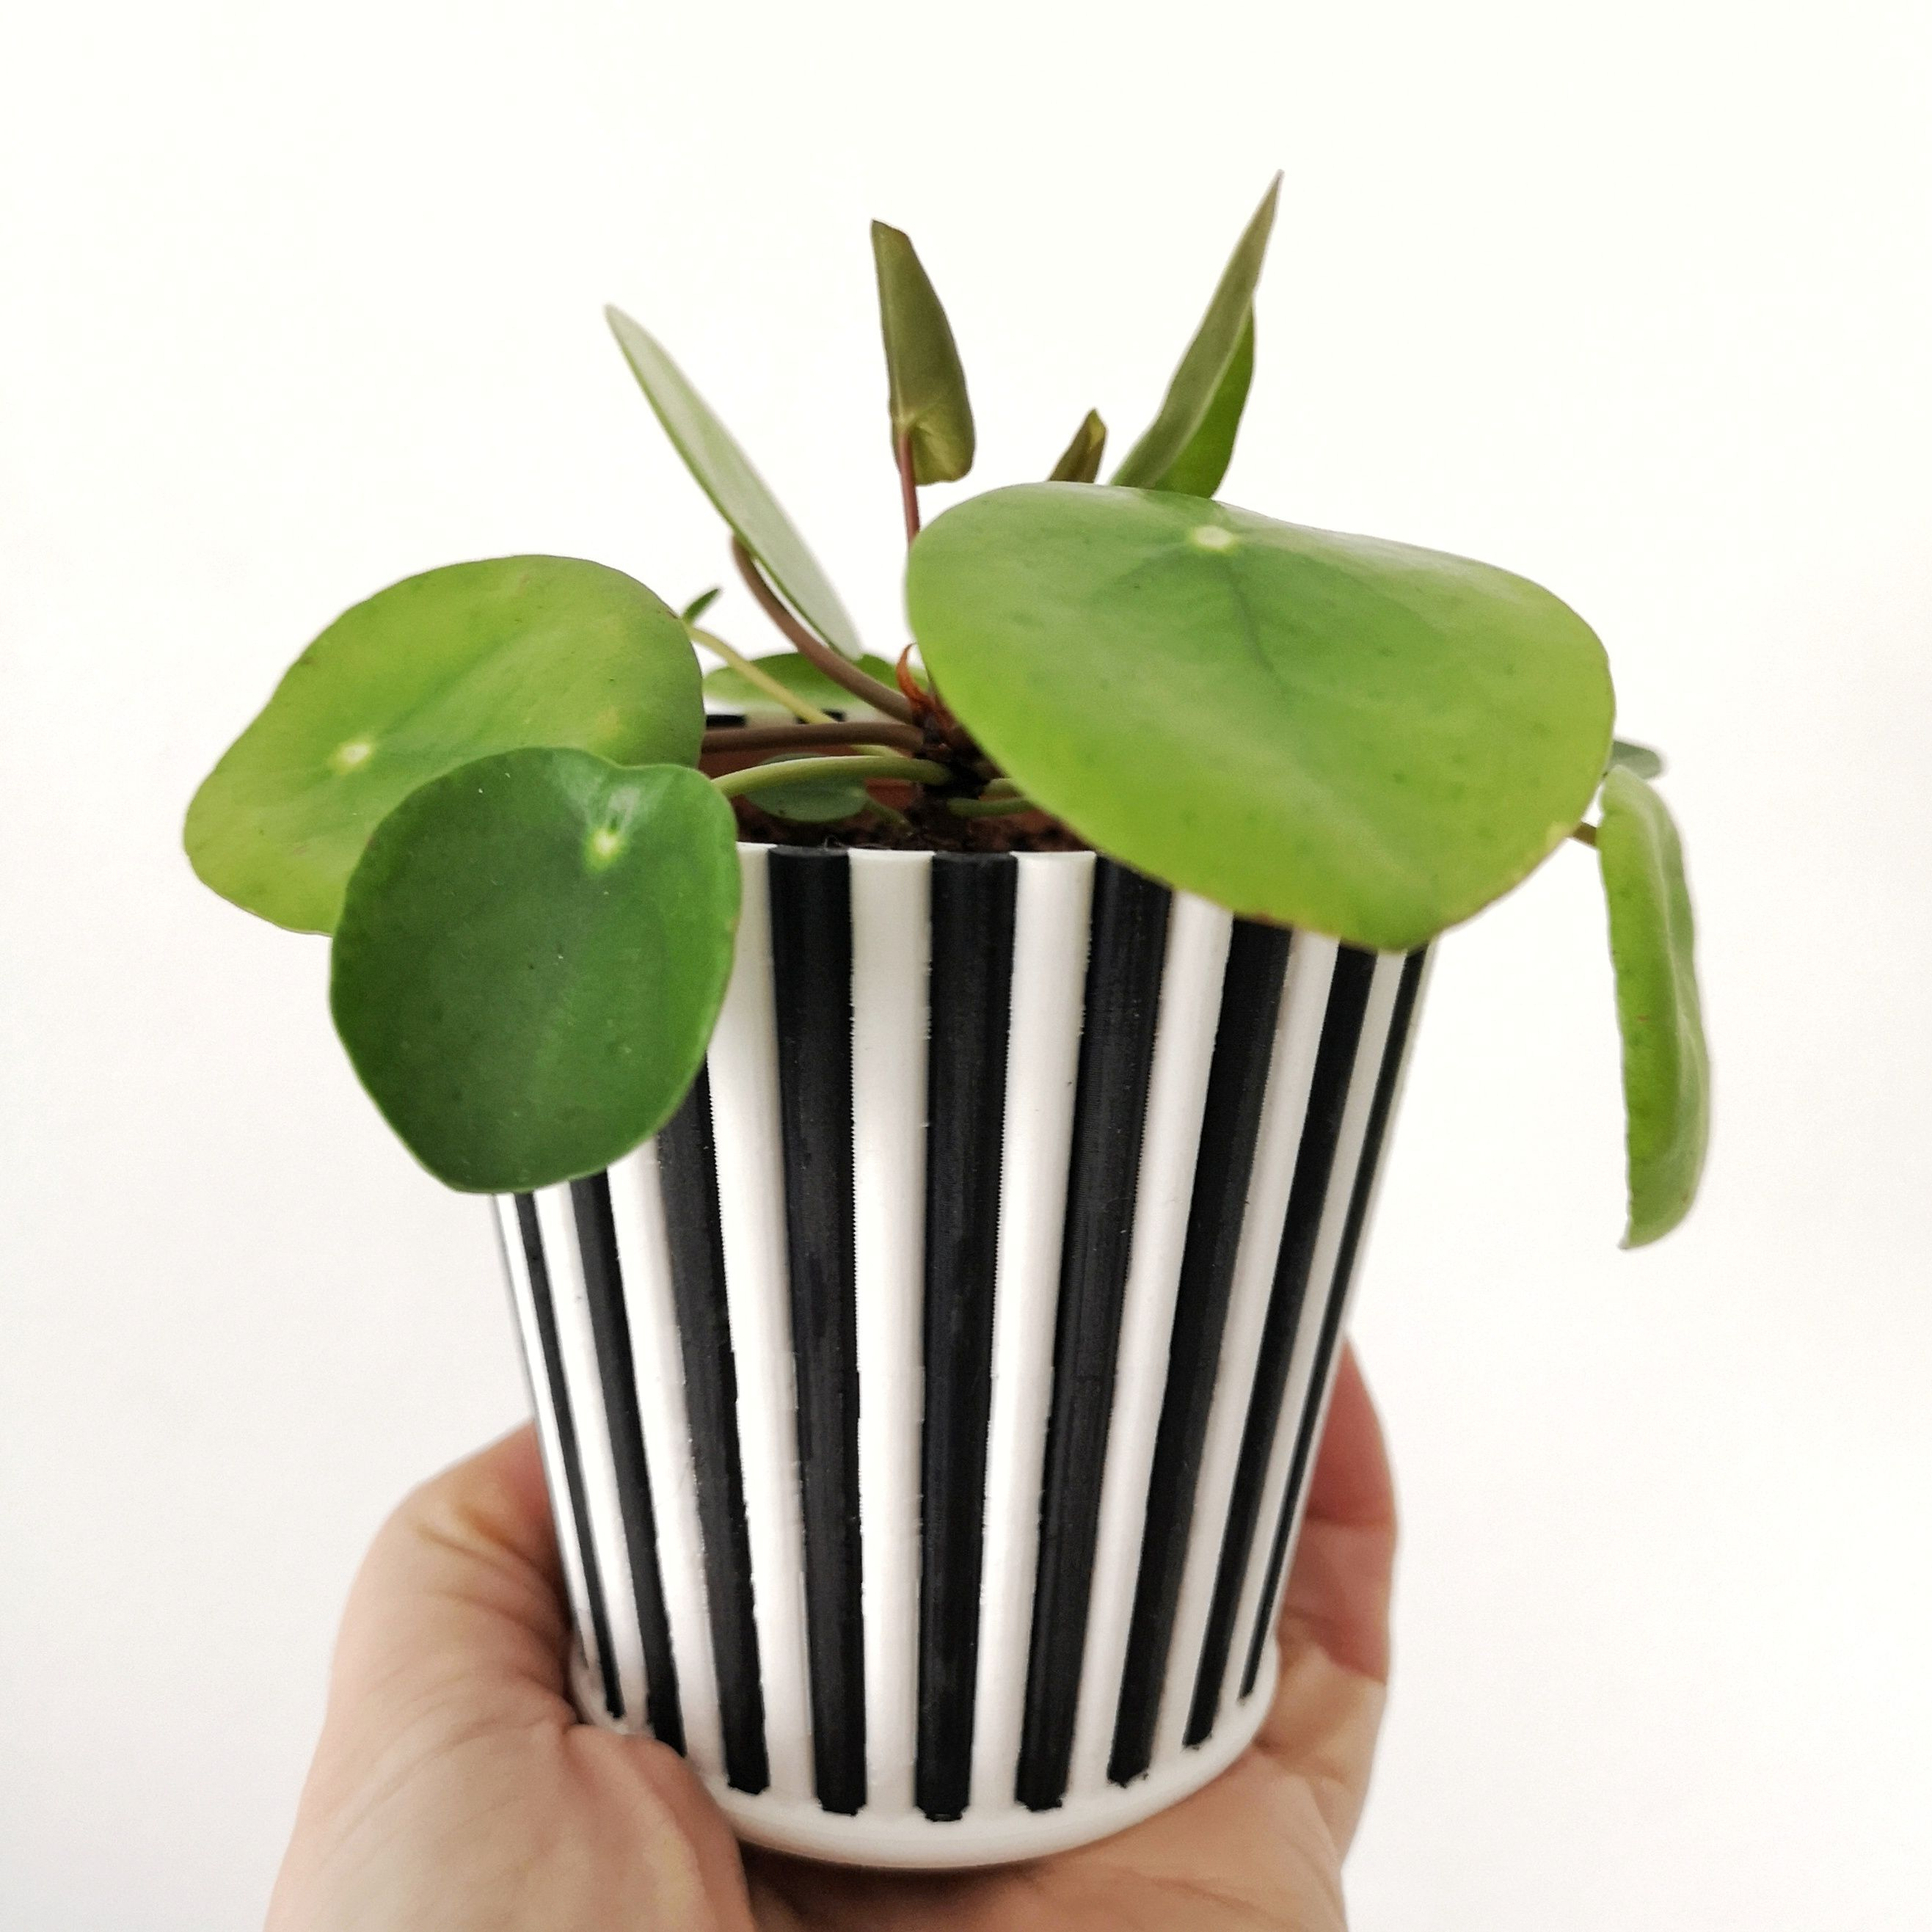 The Design Of This Stripey Planter Was Inspired By Vintage Popcorn